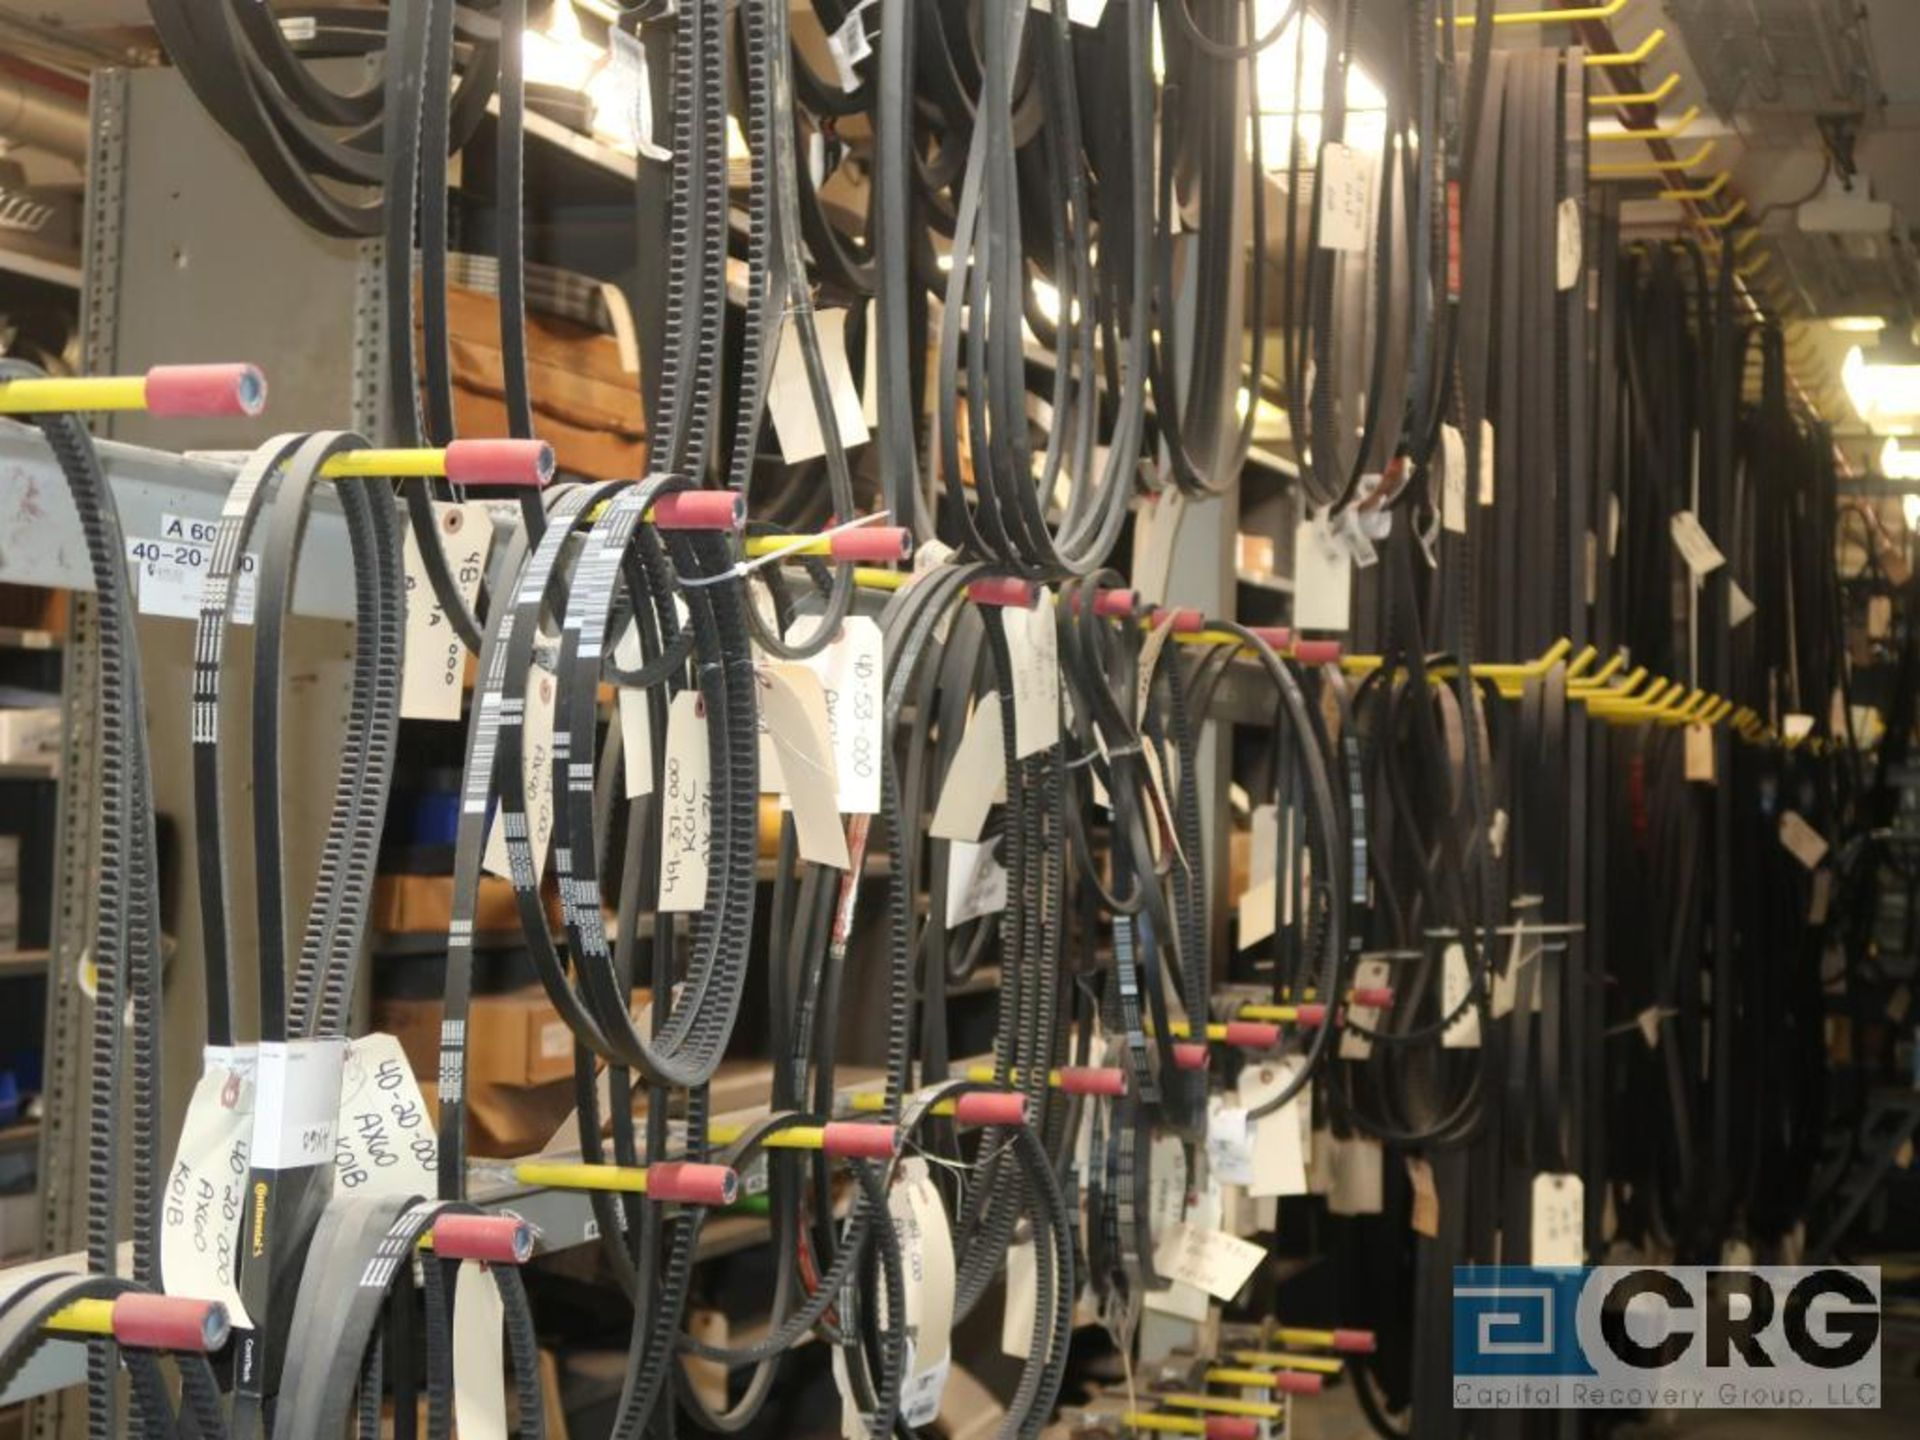 Lot of assorted V-belts hanging, and (6) metal shelving sections-CONTENTS ONLY (Store Basement) - Image 2 of 10